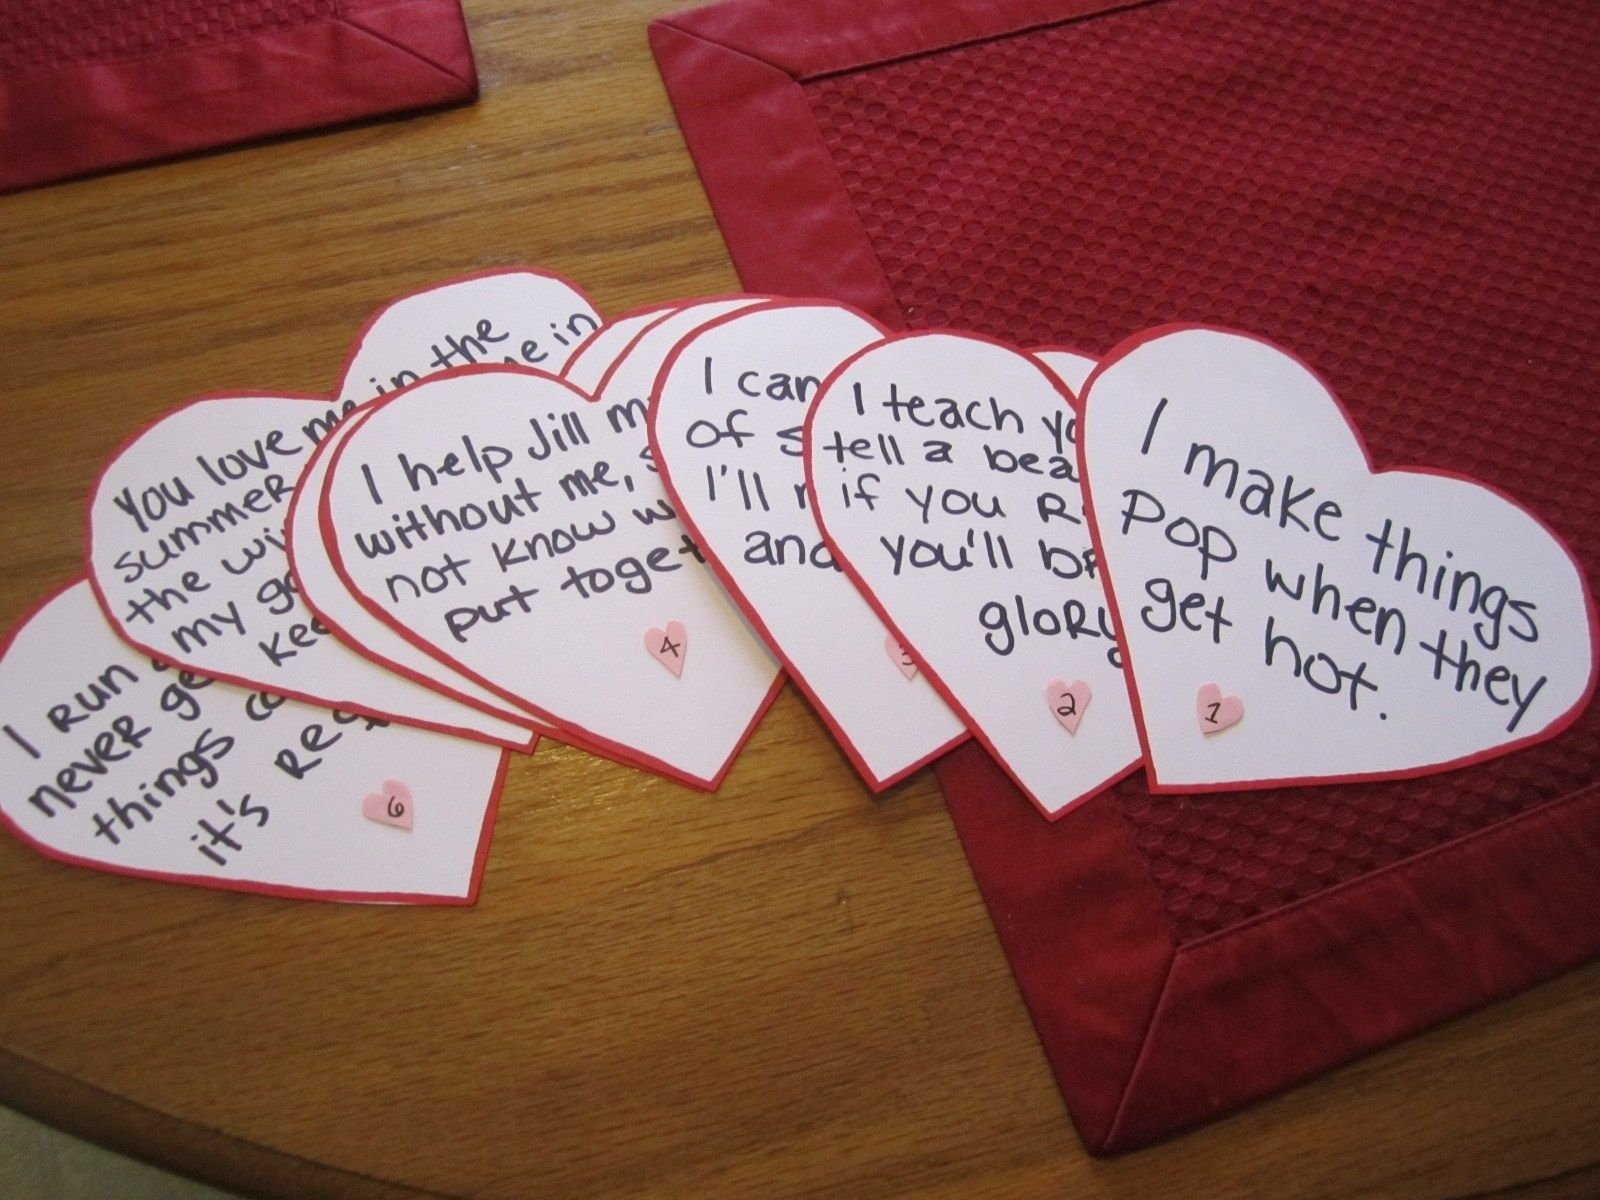 10 Spectacular Love Note Ideas For Him awesome walmart valentine gifts for her valentine gifts for him 2020